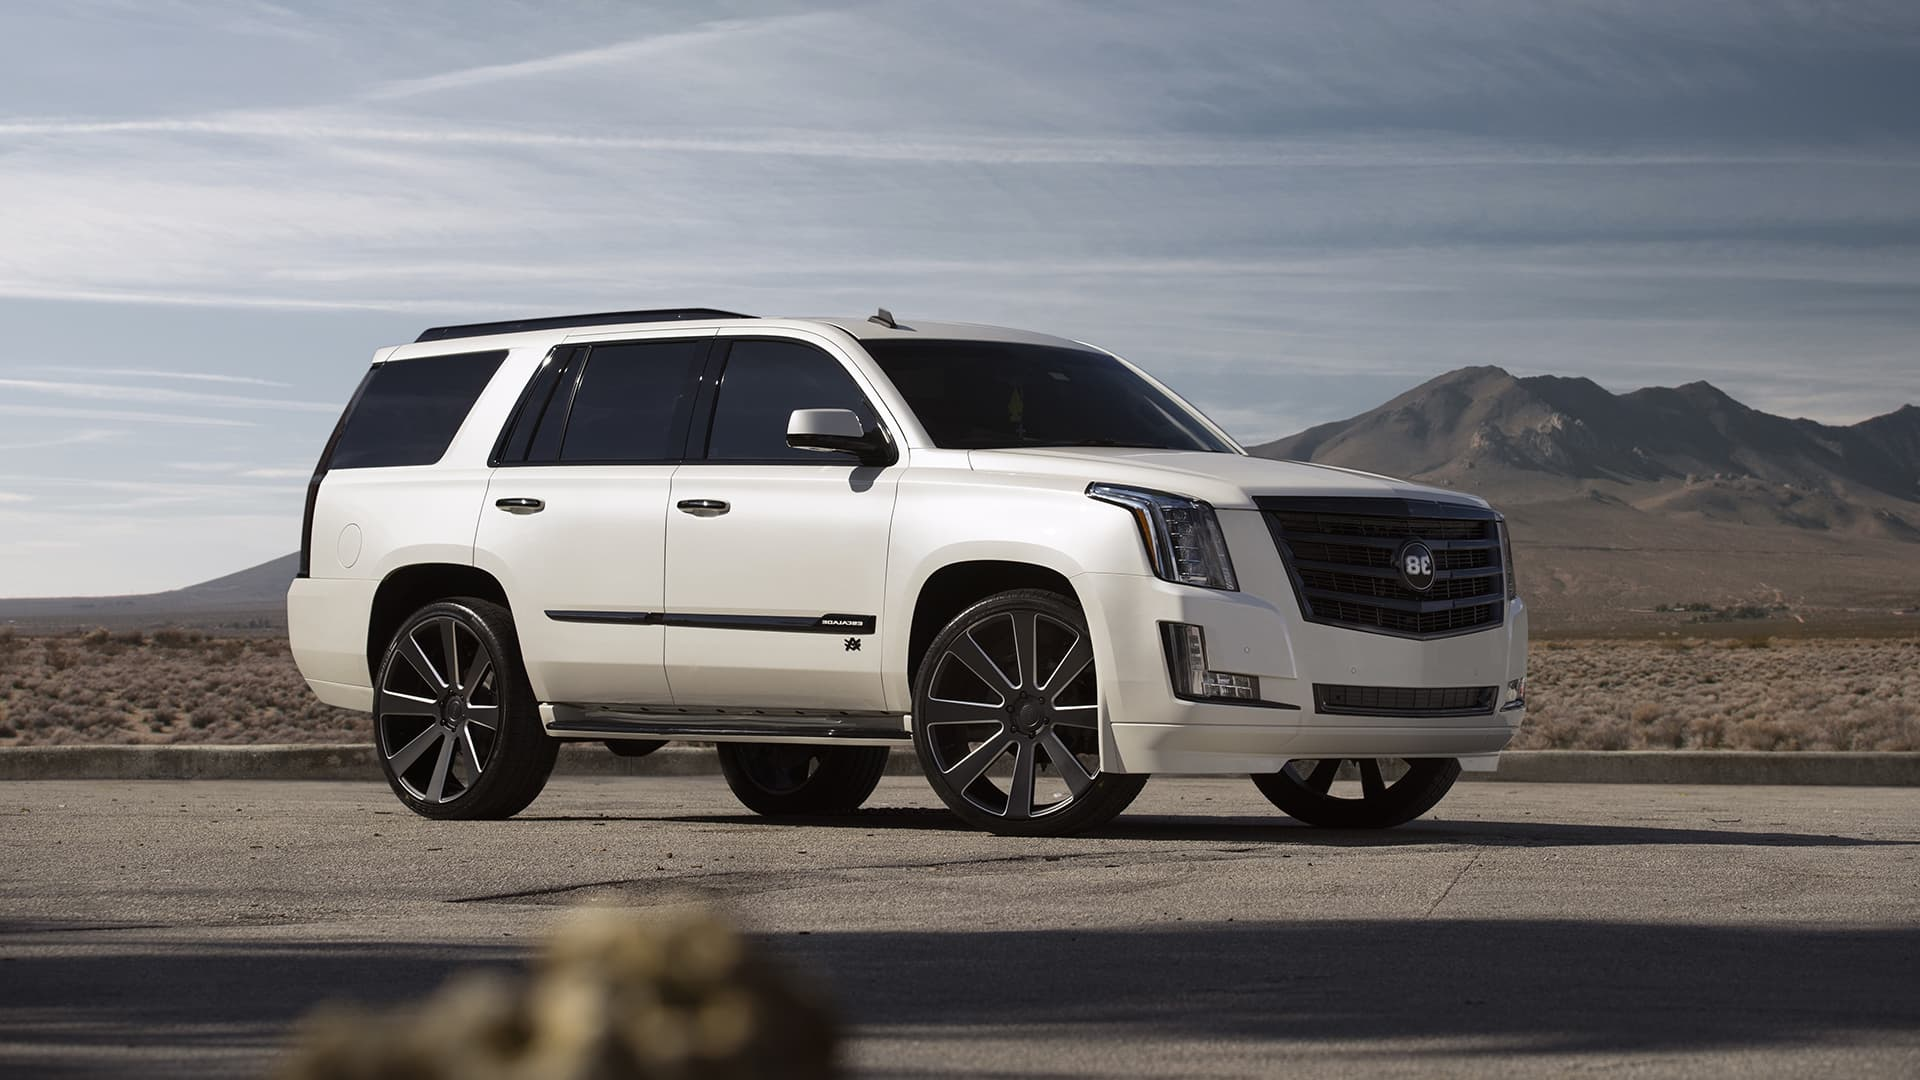 White Cadillac Escalade 1080p Wallpaper High Quality